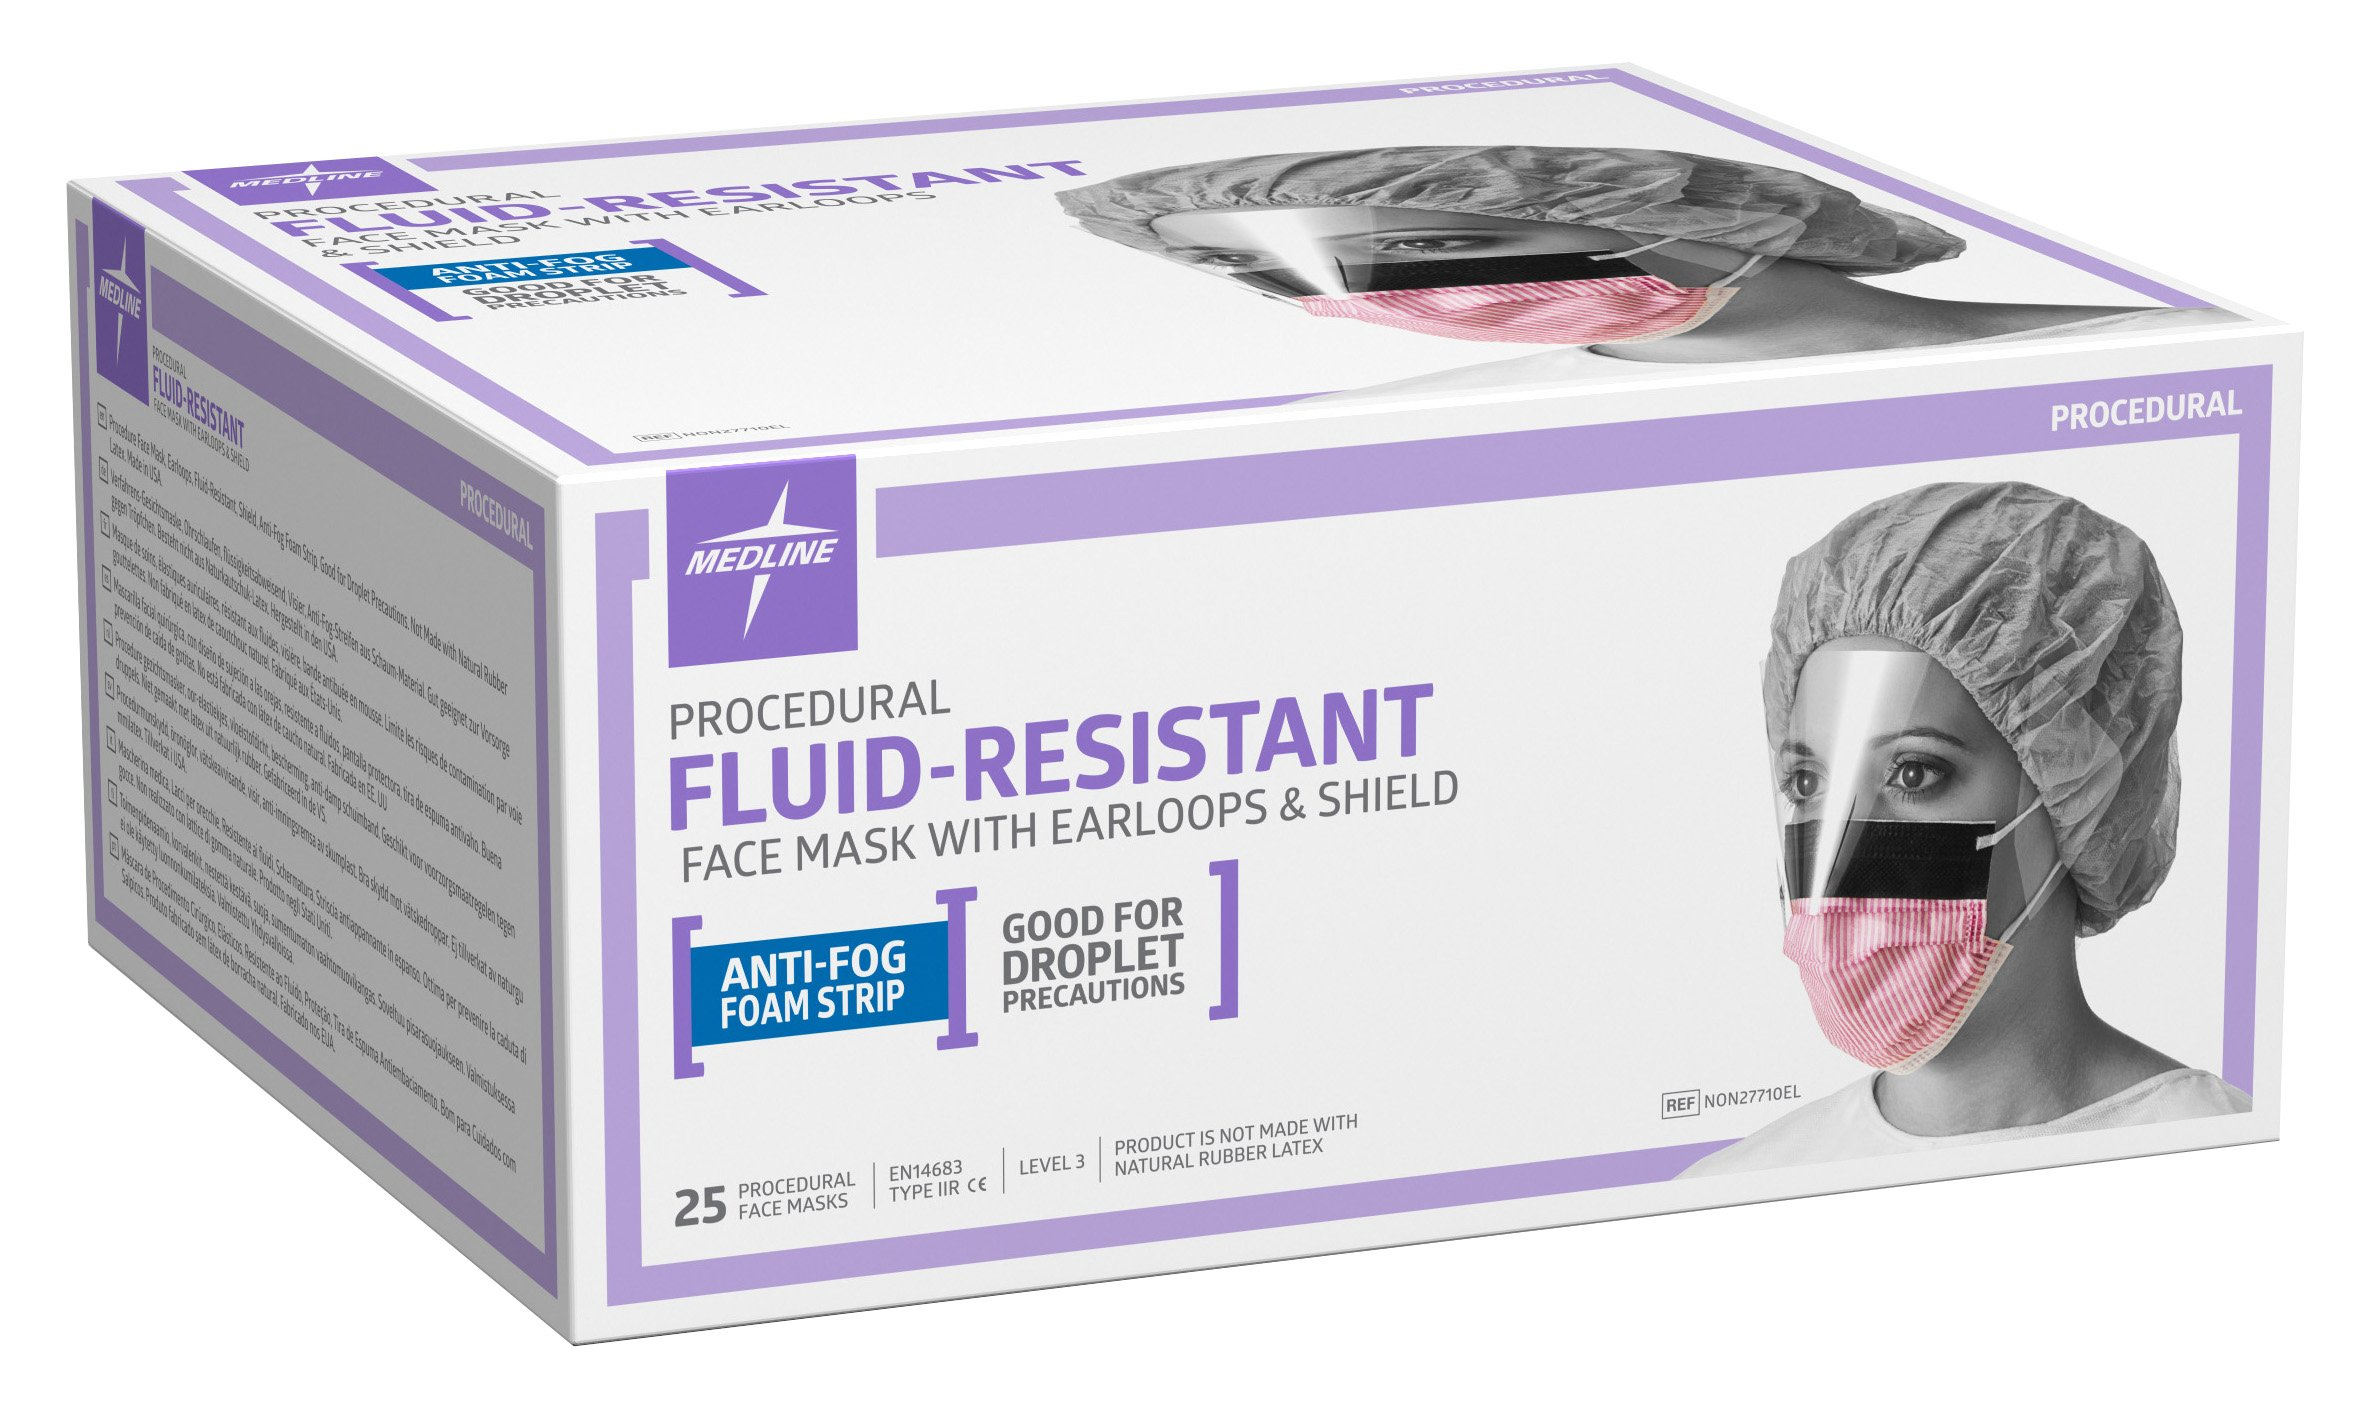 Medline NON27710EL Fluid-Resistant Surgical Face Masks with Eyeshield and Earloop, Cellulose, Anti Fog, Latex Free, Purple and White (Pack of 100) by Medline (Image #2)